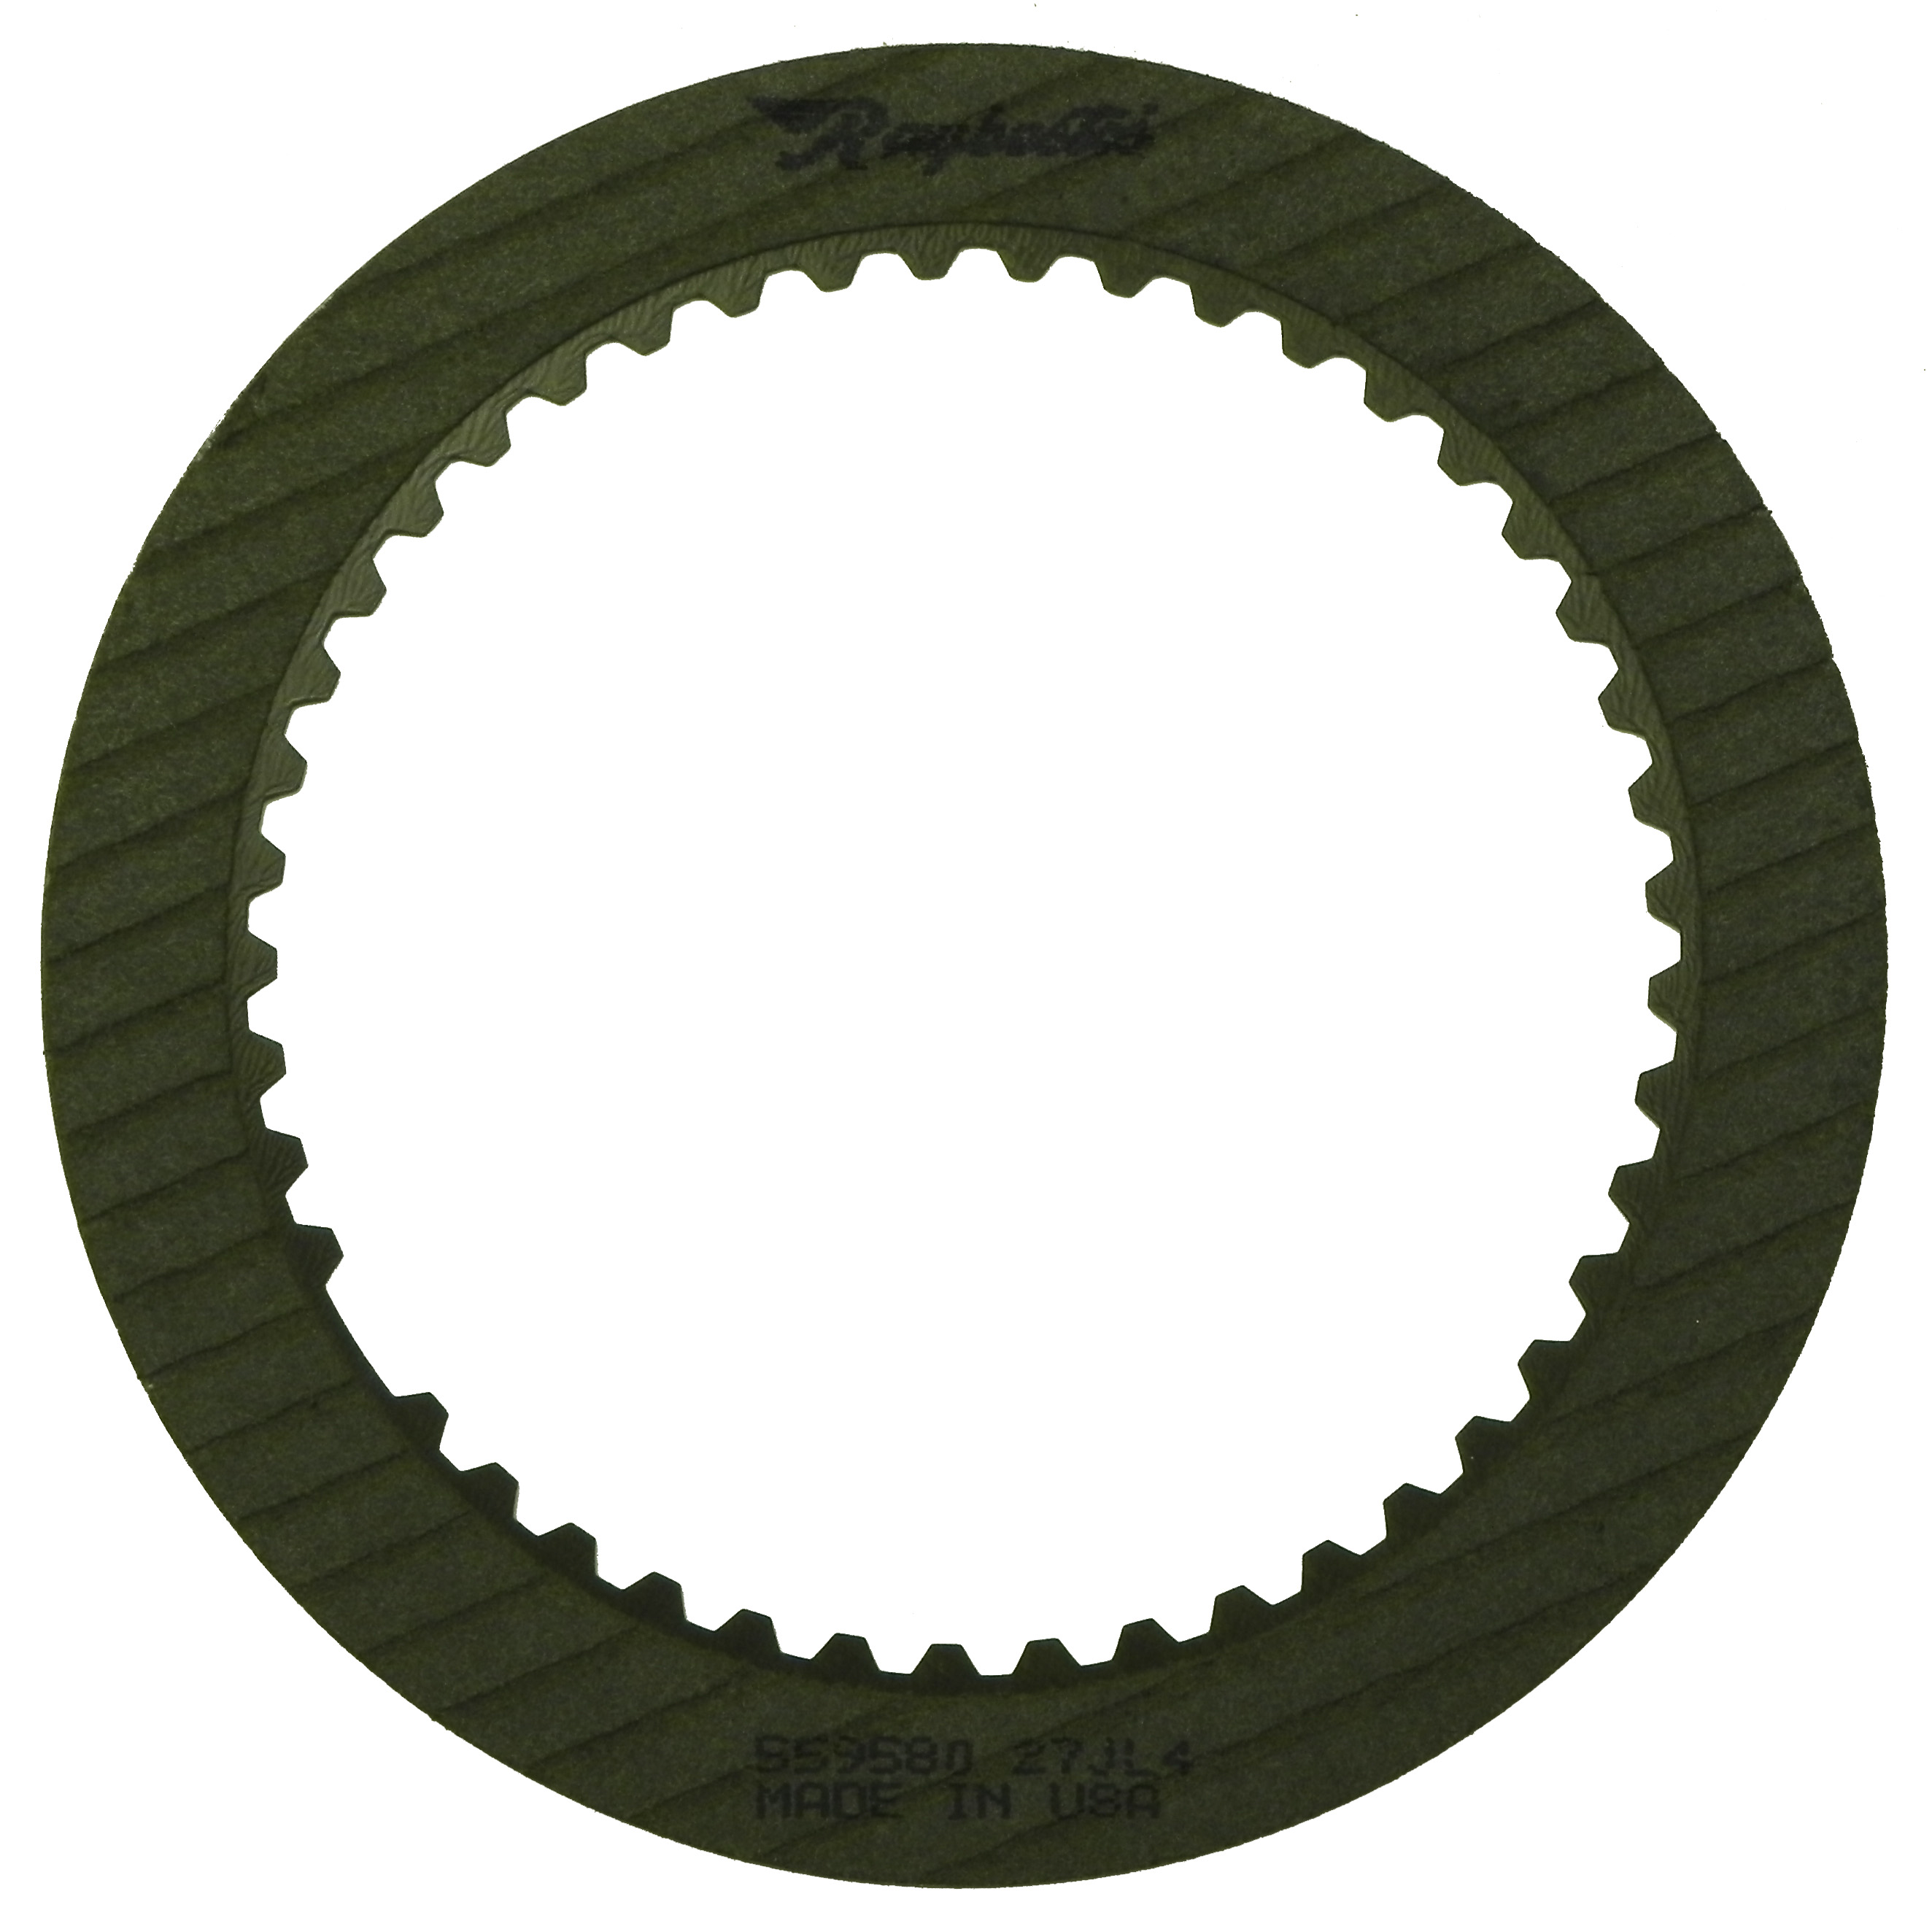 R559580 | 1960-2004 Friction Clutch Plate High Energy Forward High Energy